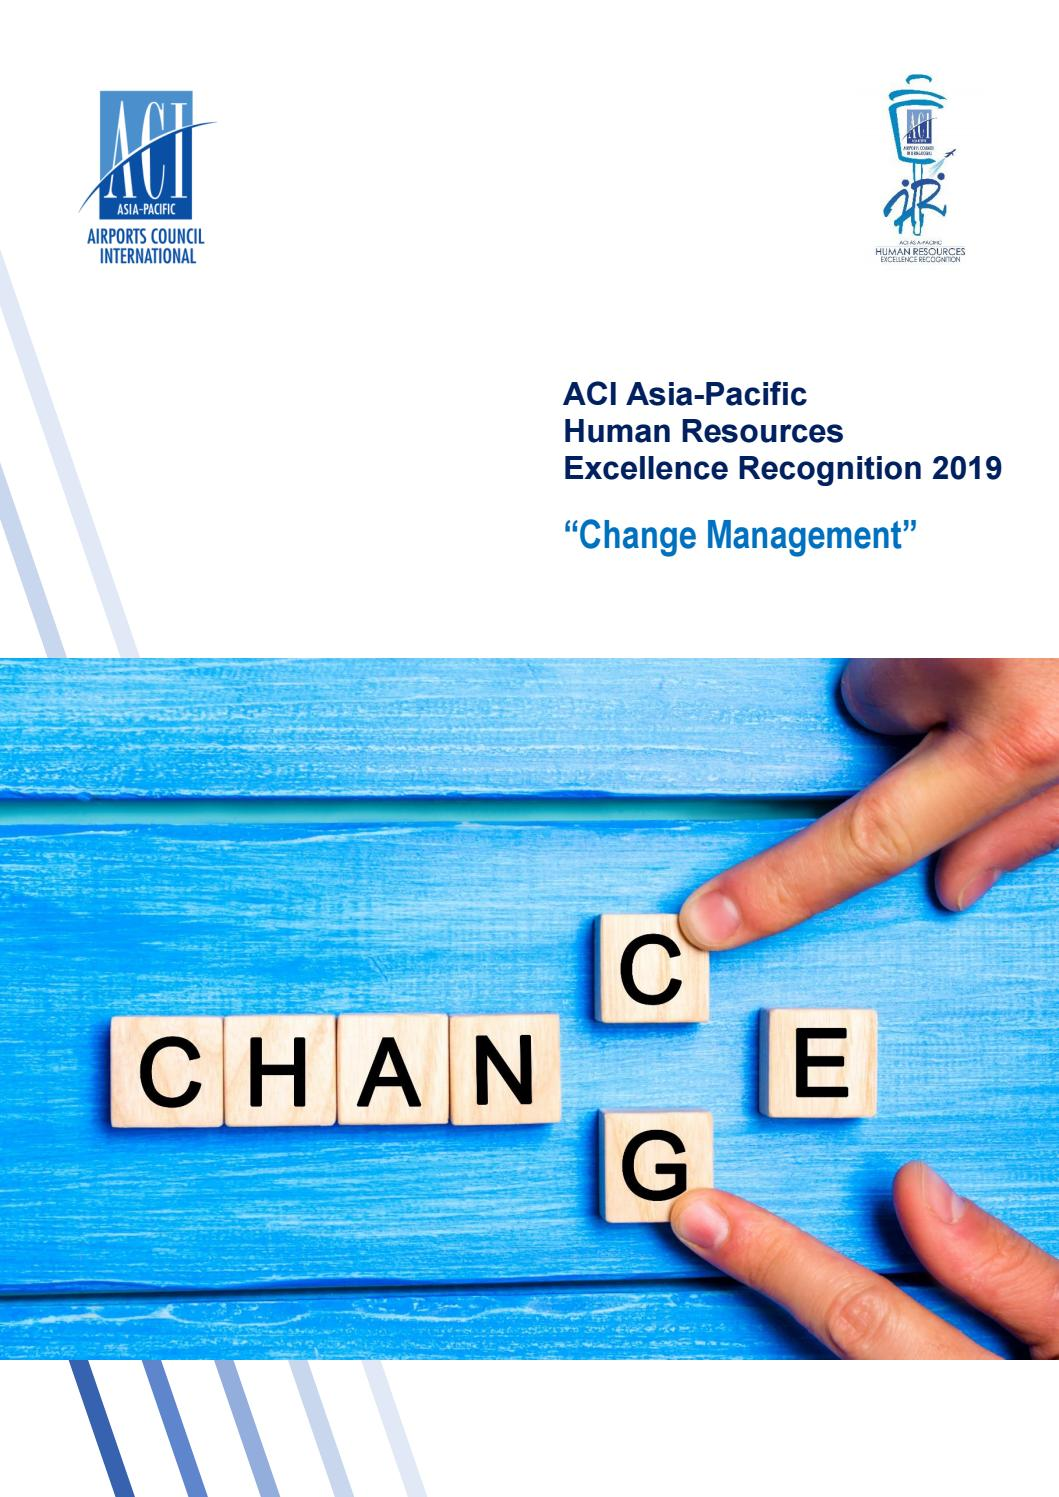 ACI Asia Pacific Human Resources Excellence Recognition 2019